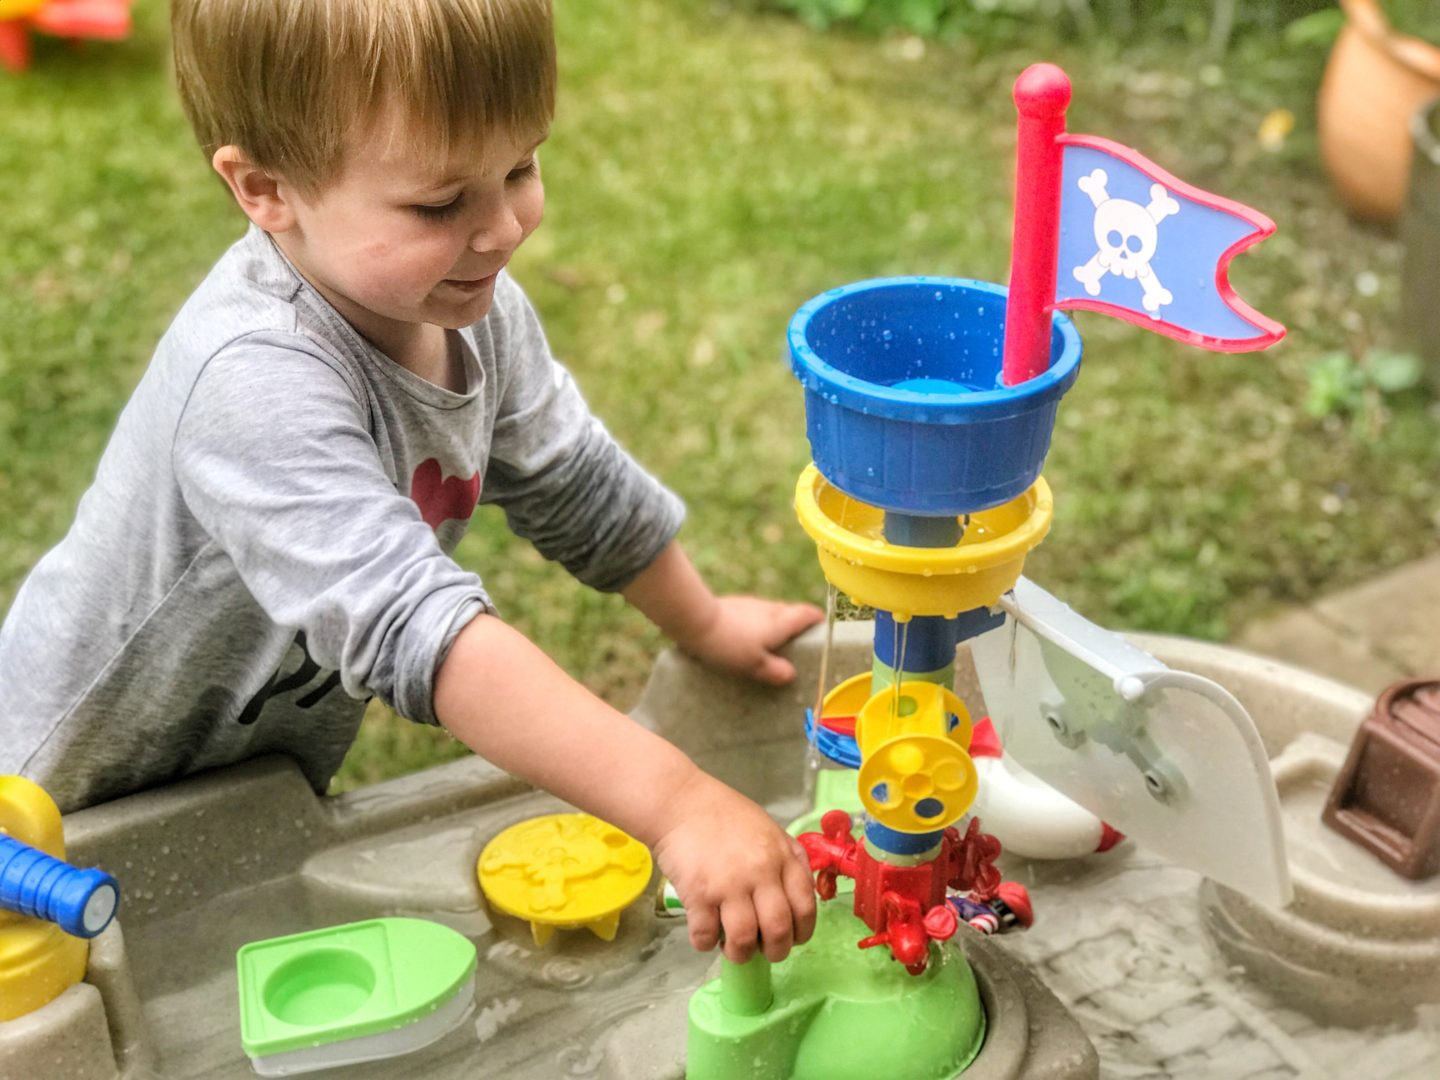 Dexter pushing the pump on the Little Tikes anchors away pirate ship water table